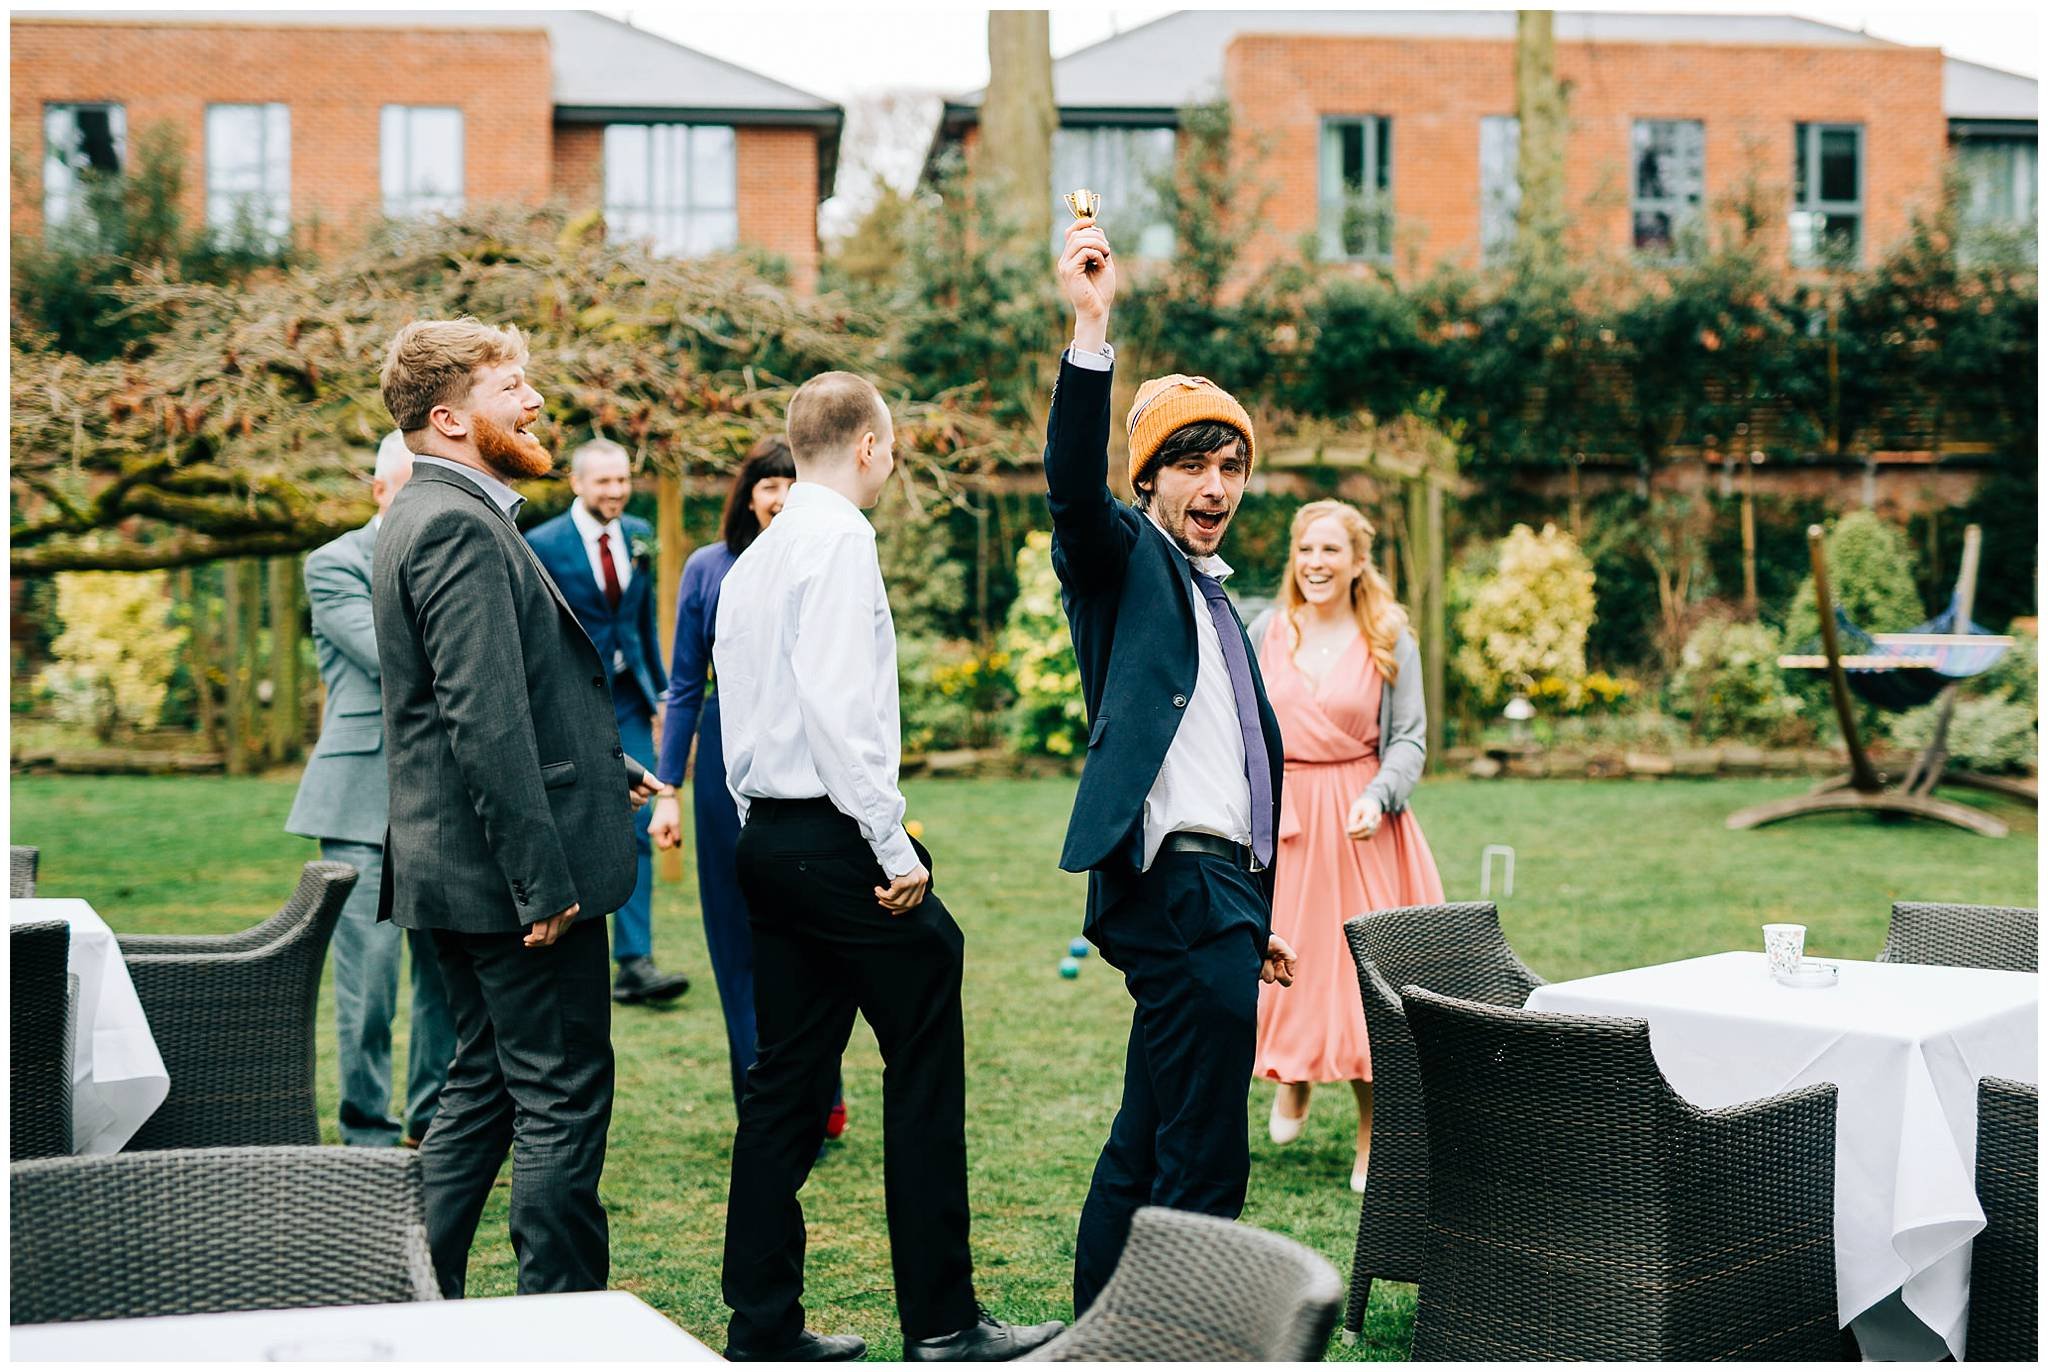 Outdoor Garden Wedding - Eleven Didsbury-64.jpg